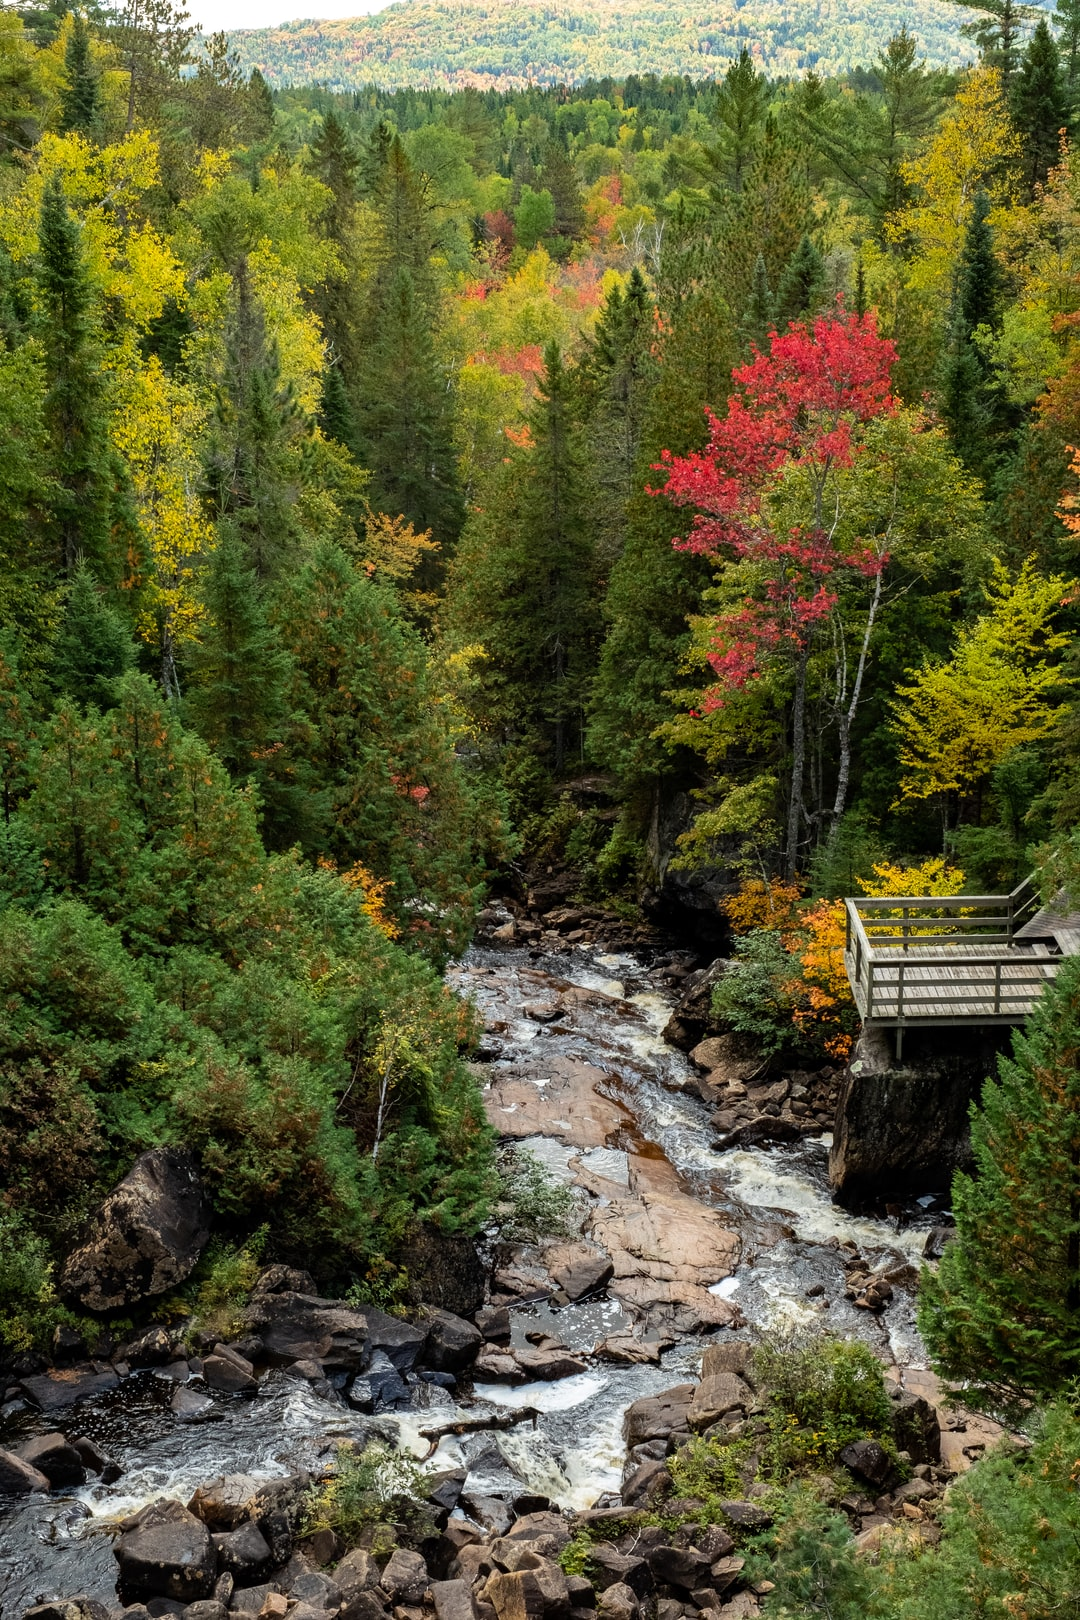 We were on our way to the Chute-à-Bull, the colors were beautiful at that time of the year. Some trees were already red. This is a glimpse of what a Canadian fall looks like.